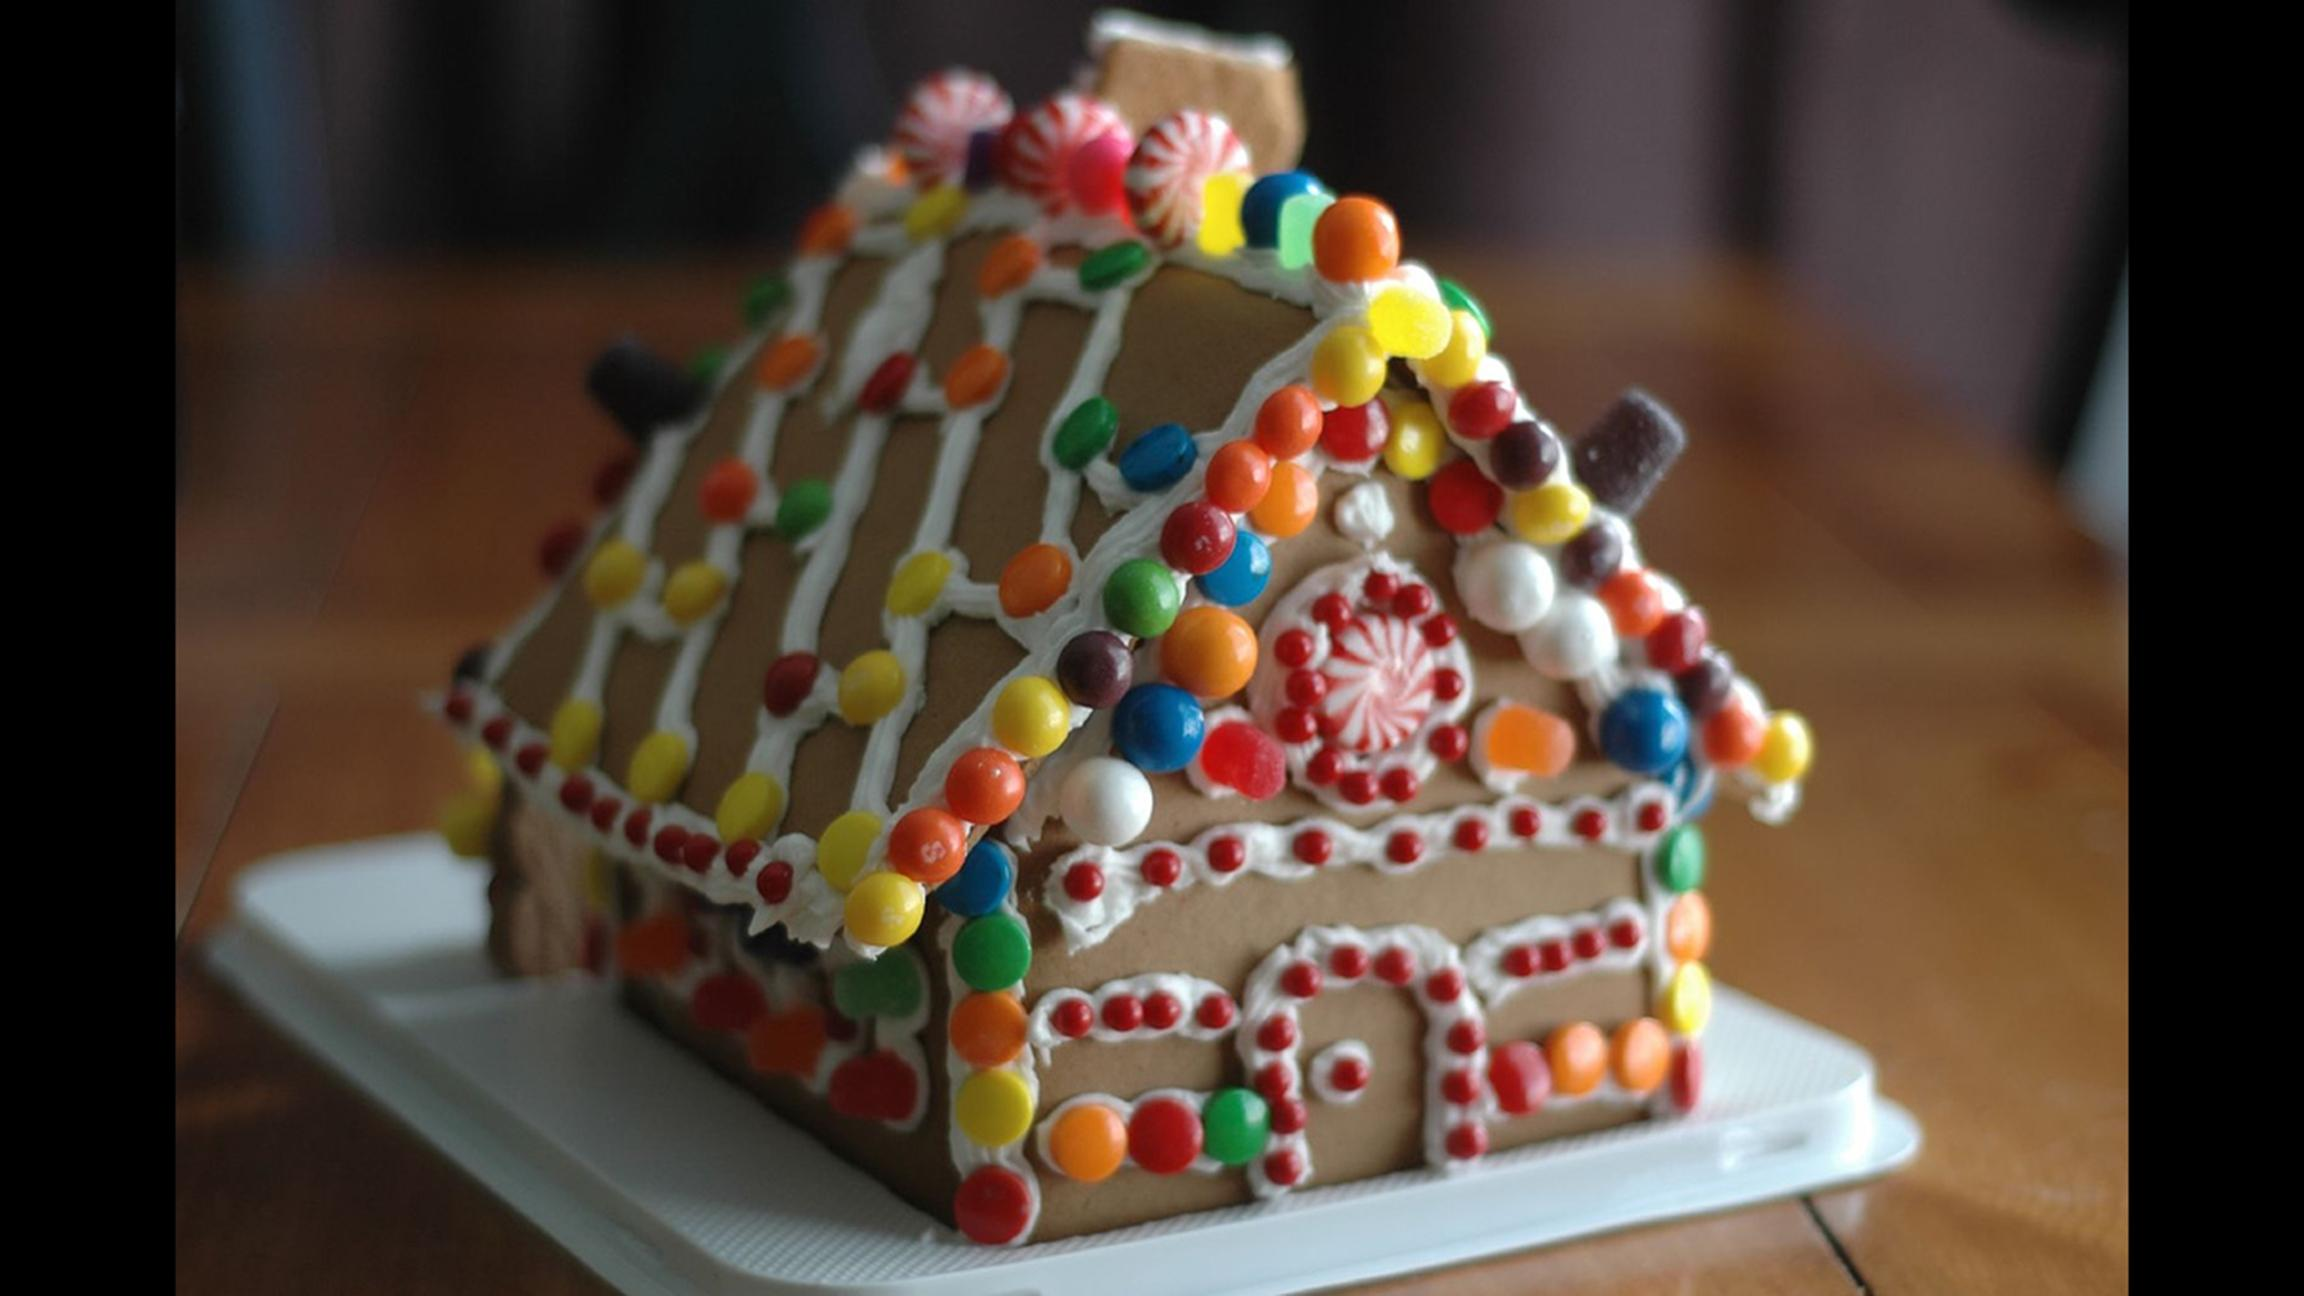 House party: Indulge your sweet side with gingerbread house-decorating events. (Carrie Stephens / Flickr)